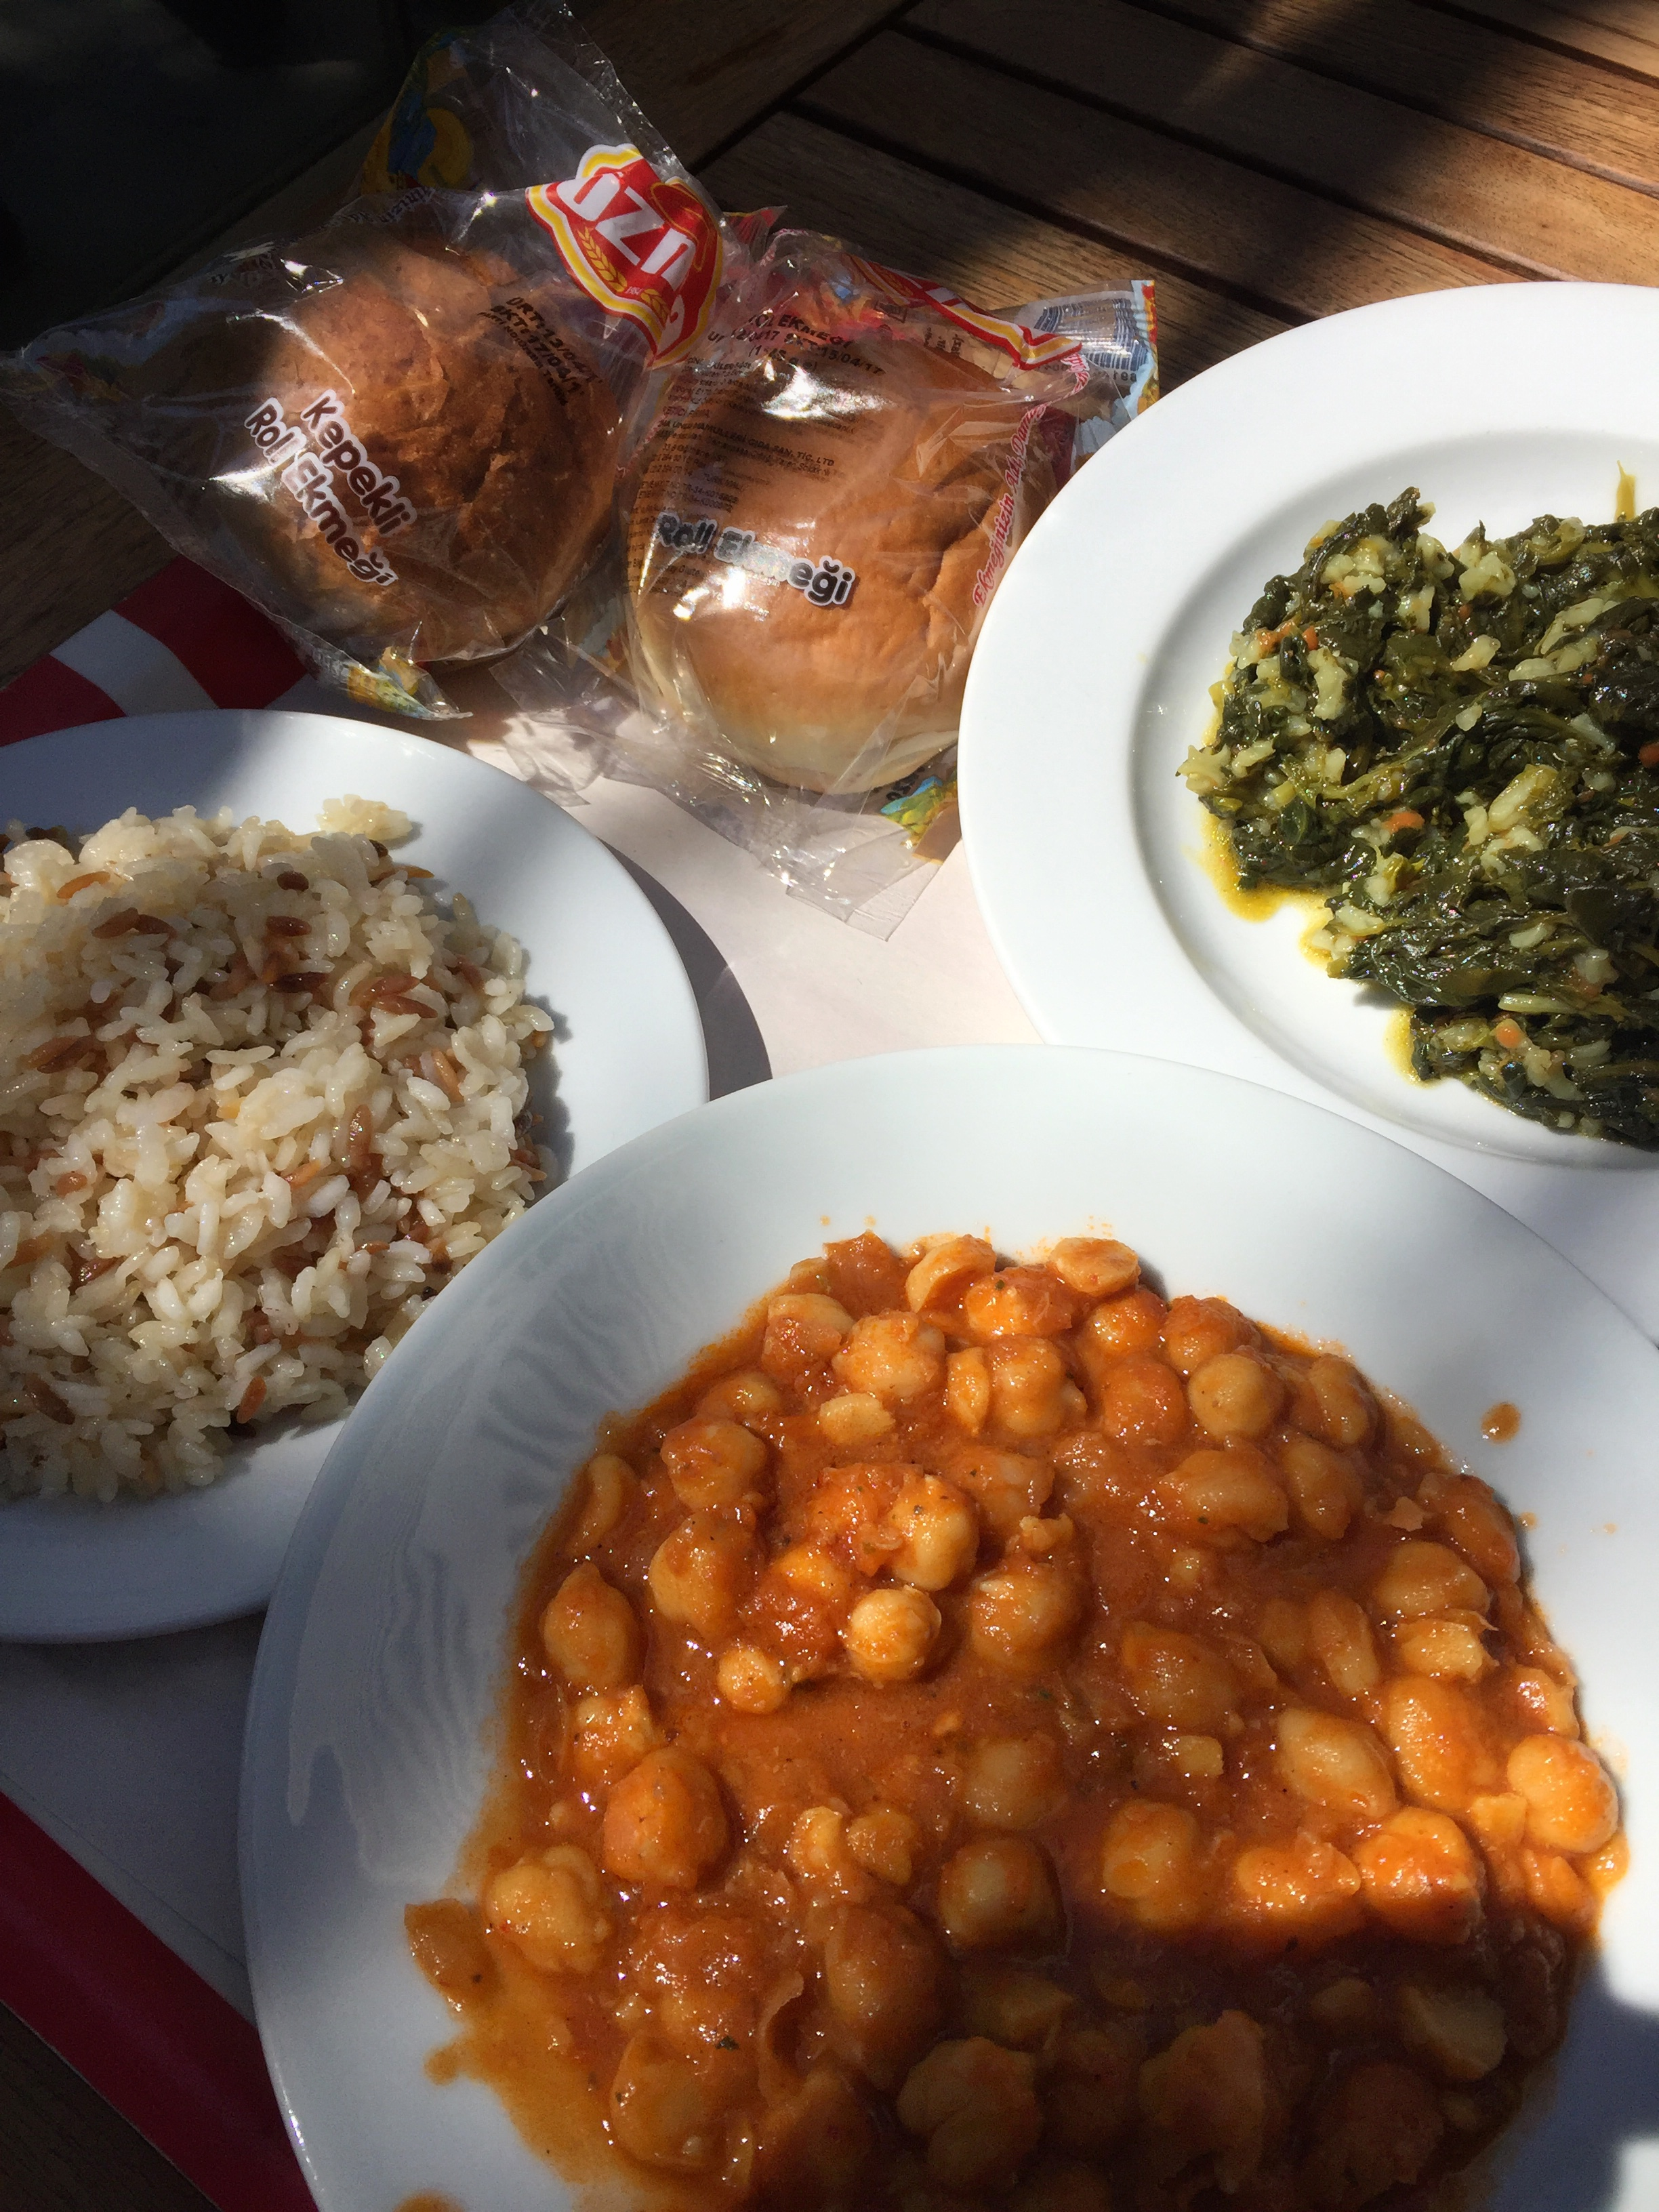 lunch of chickpeas, spinach, & rice